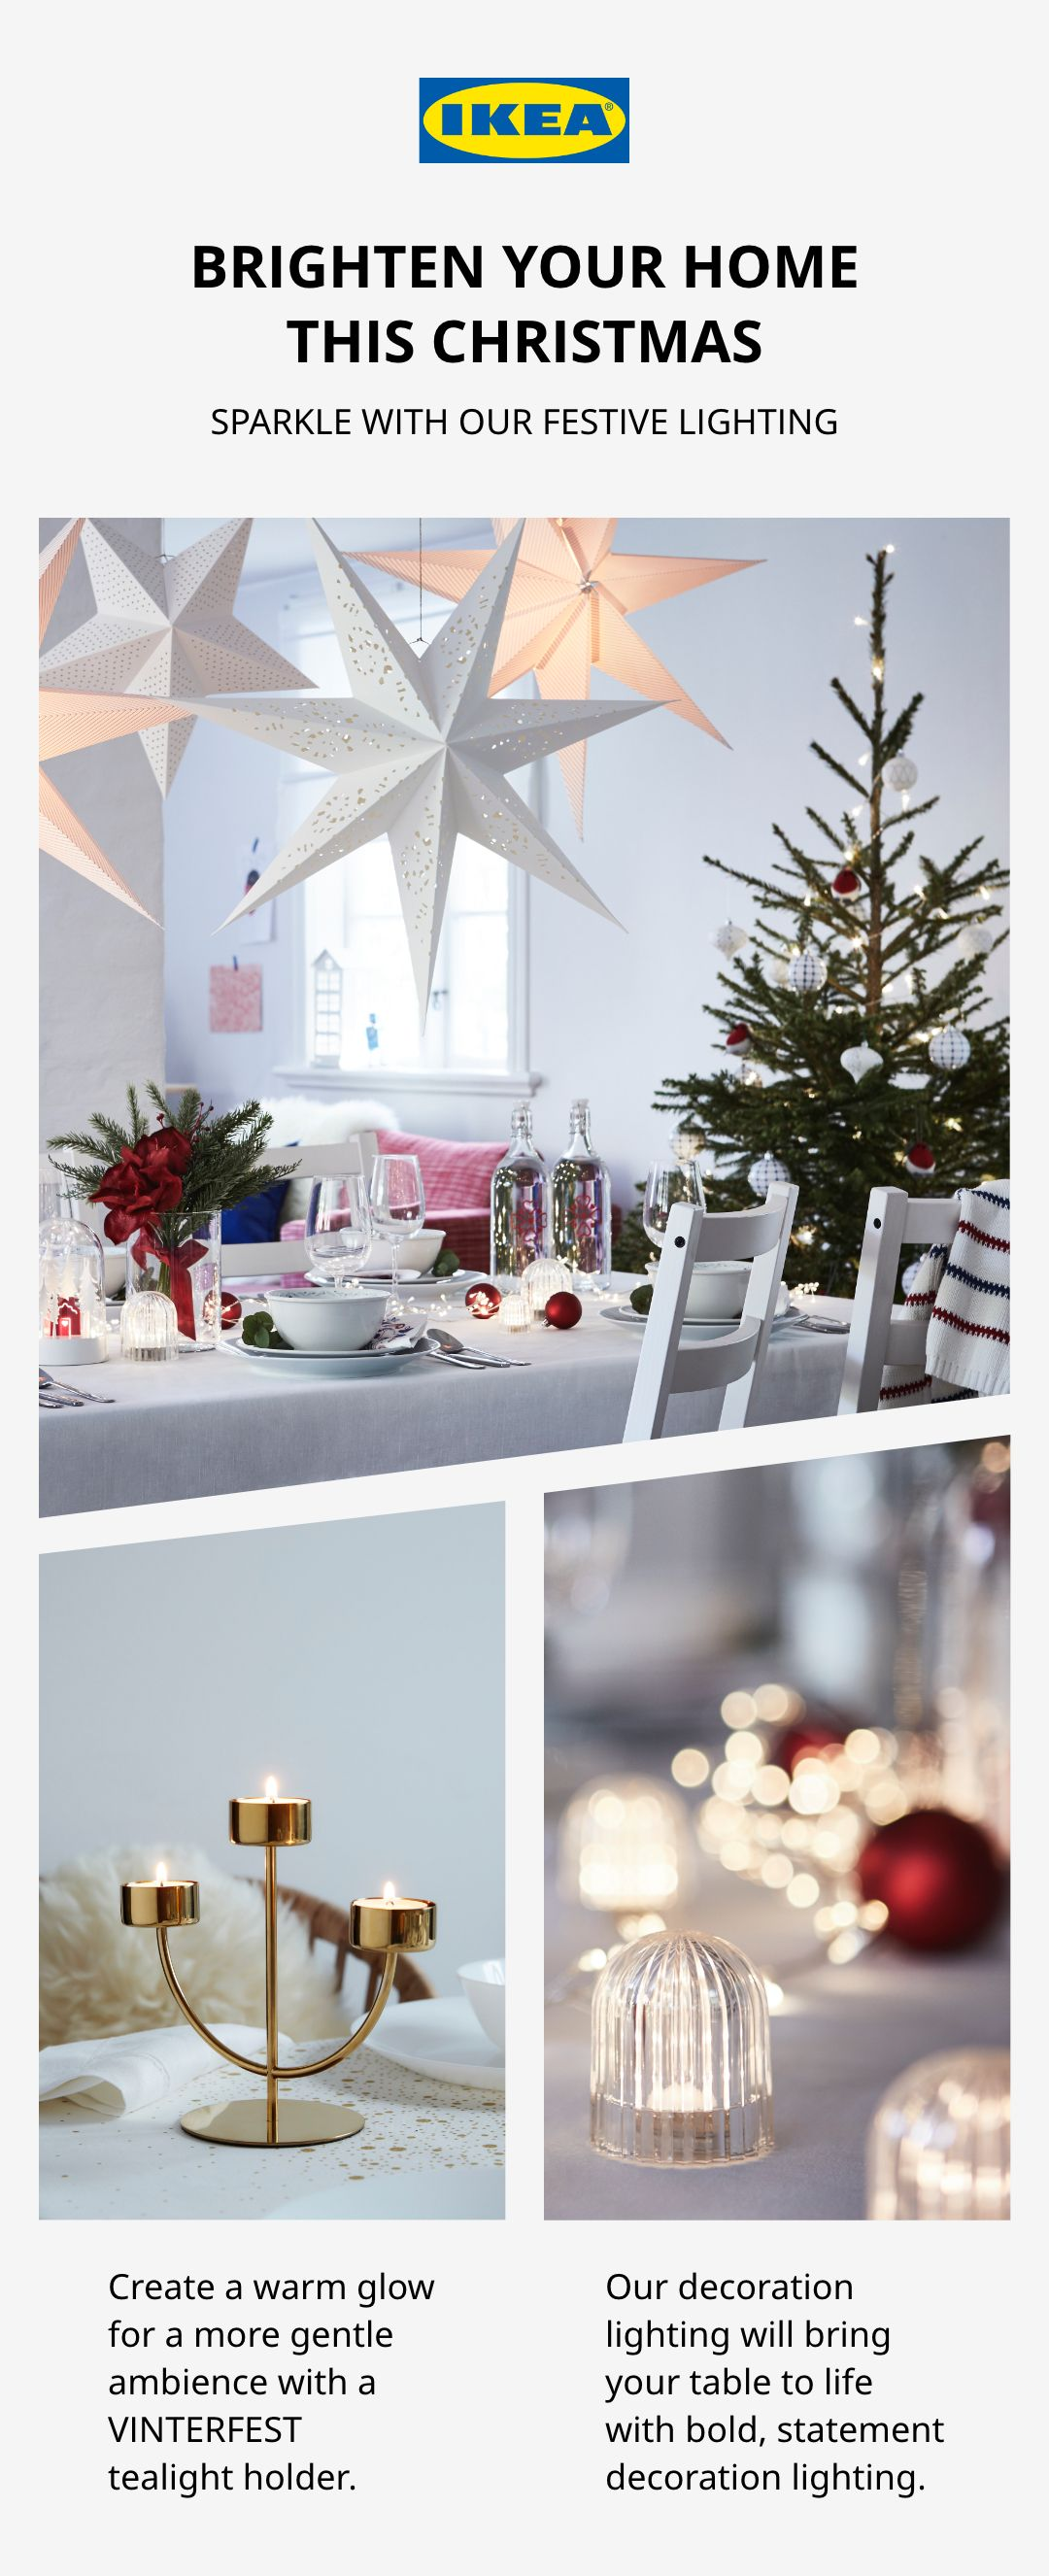 Brighten your home this Christmas